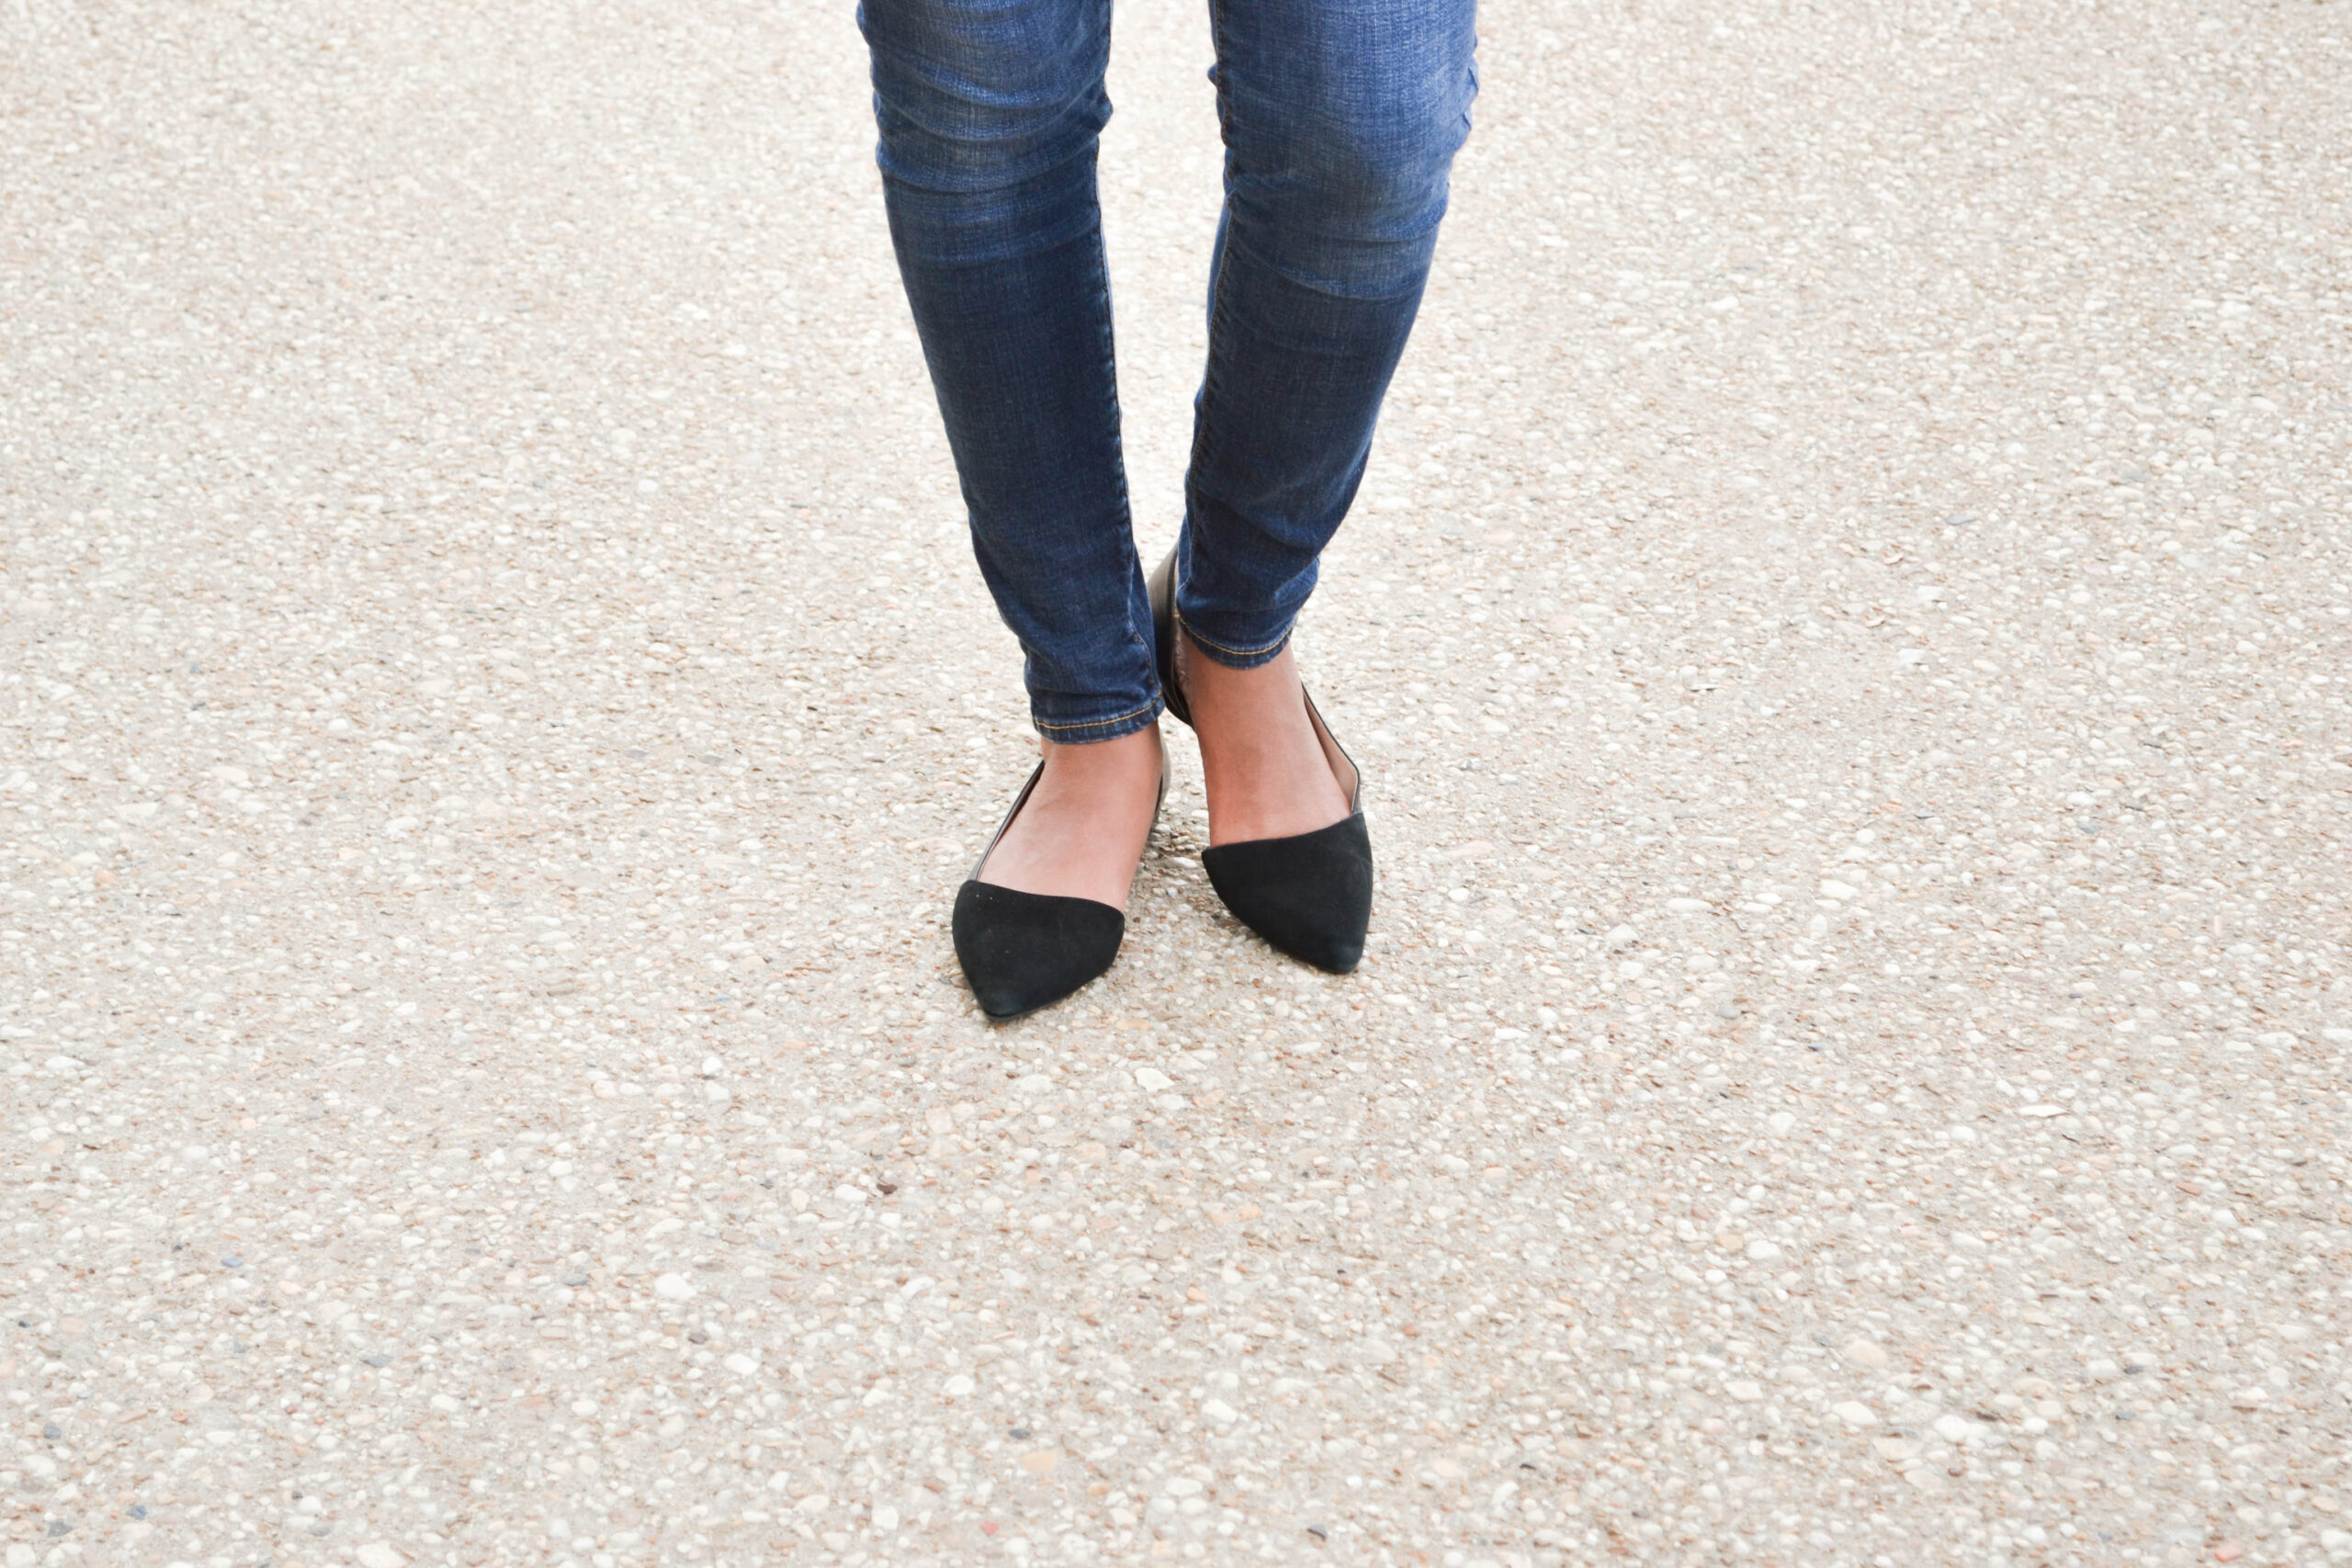 skinny jeans, woman walking, taking steps, black pointed shoes, tografy, photography business management